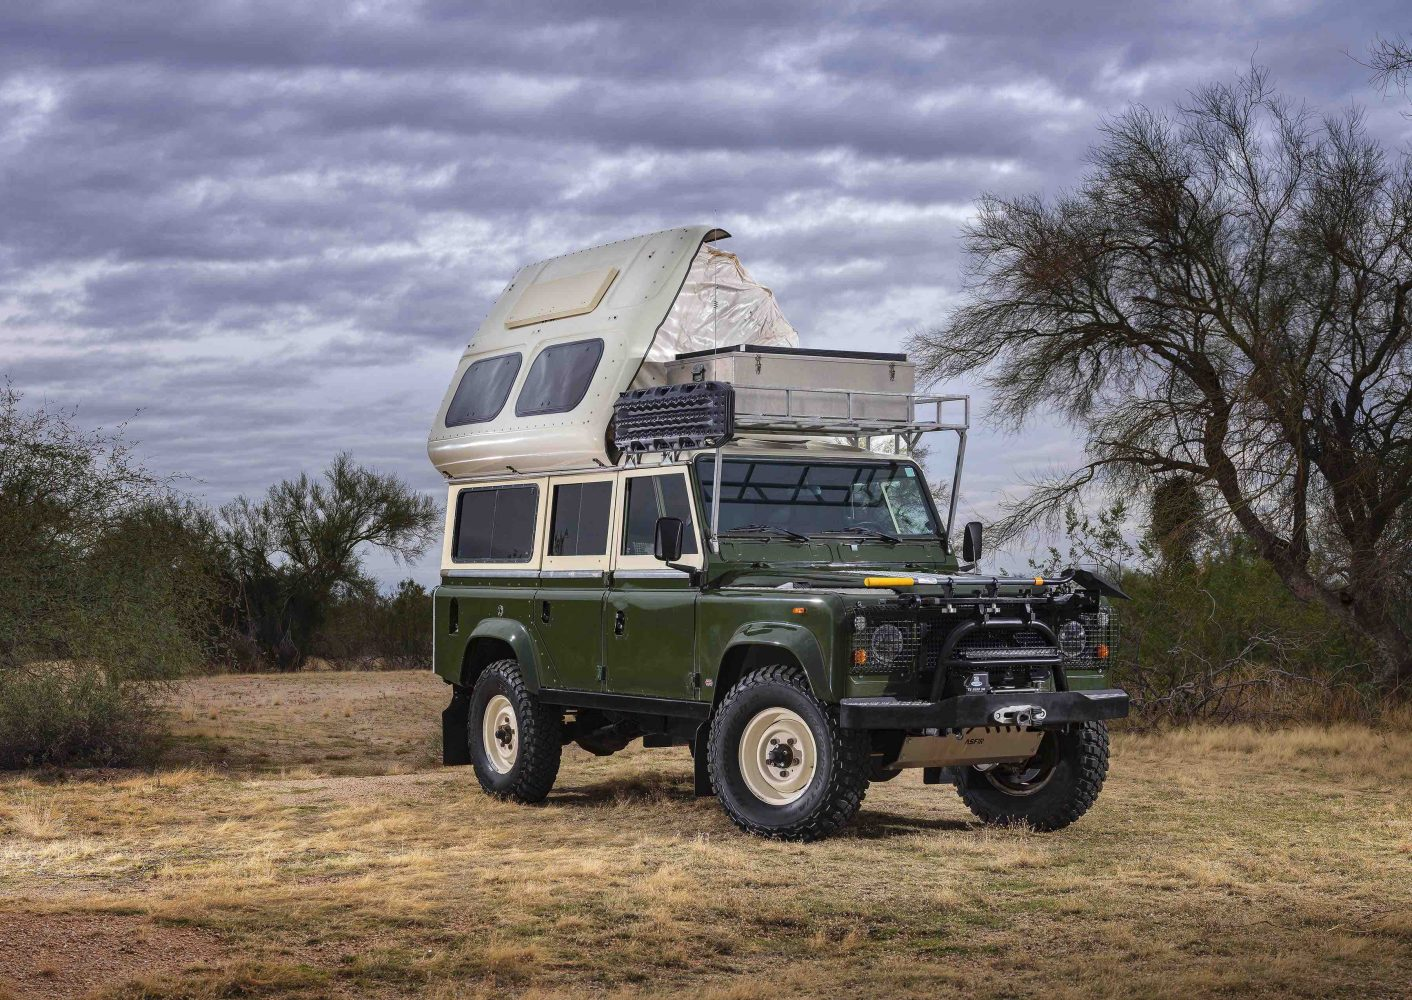 Expedition Portal Classifieds: 1984 Defender 110 Dormobile - Expedition Portal